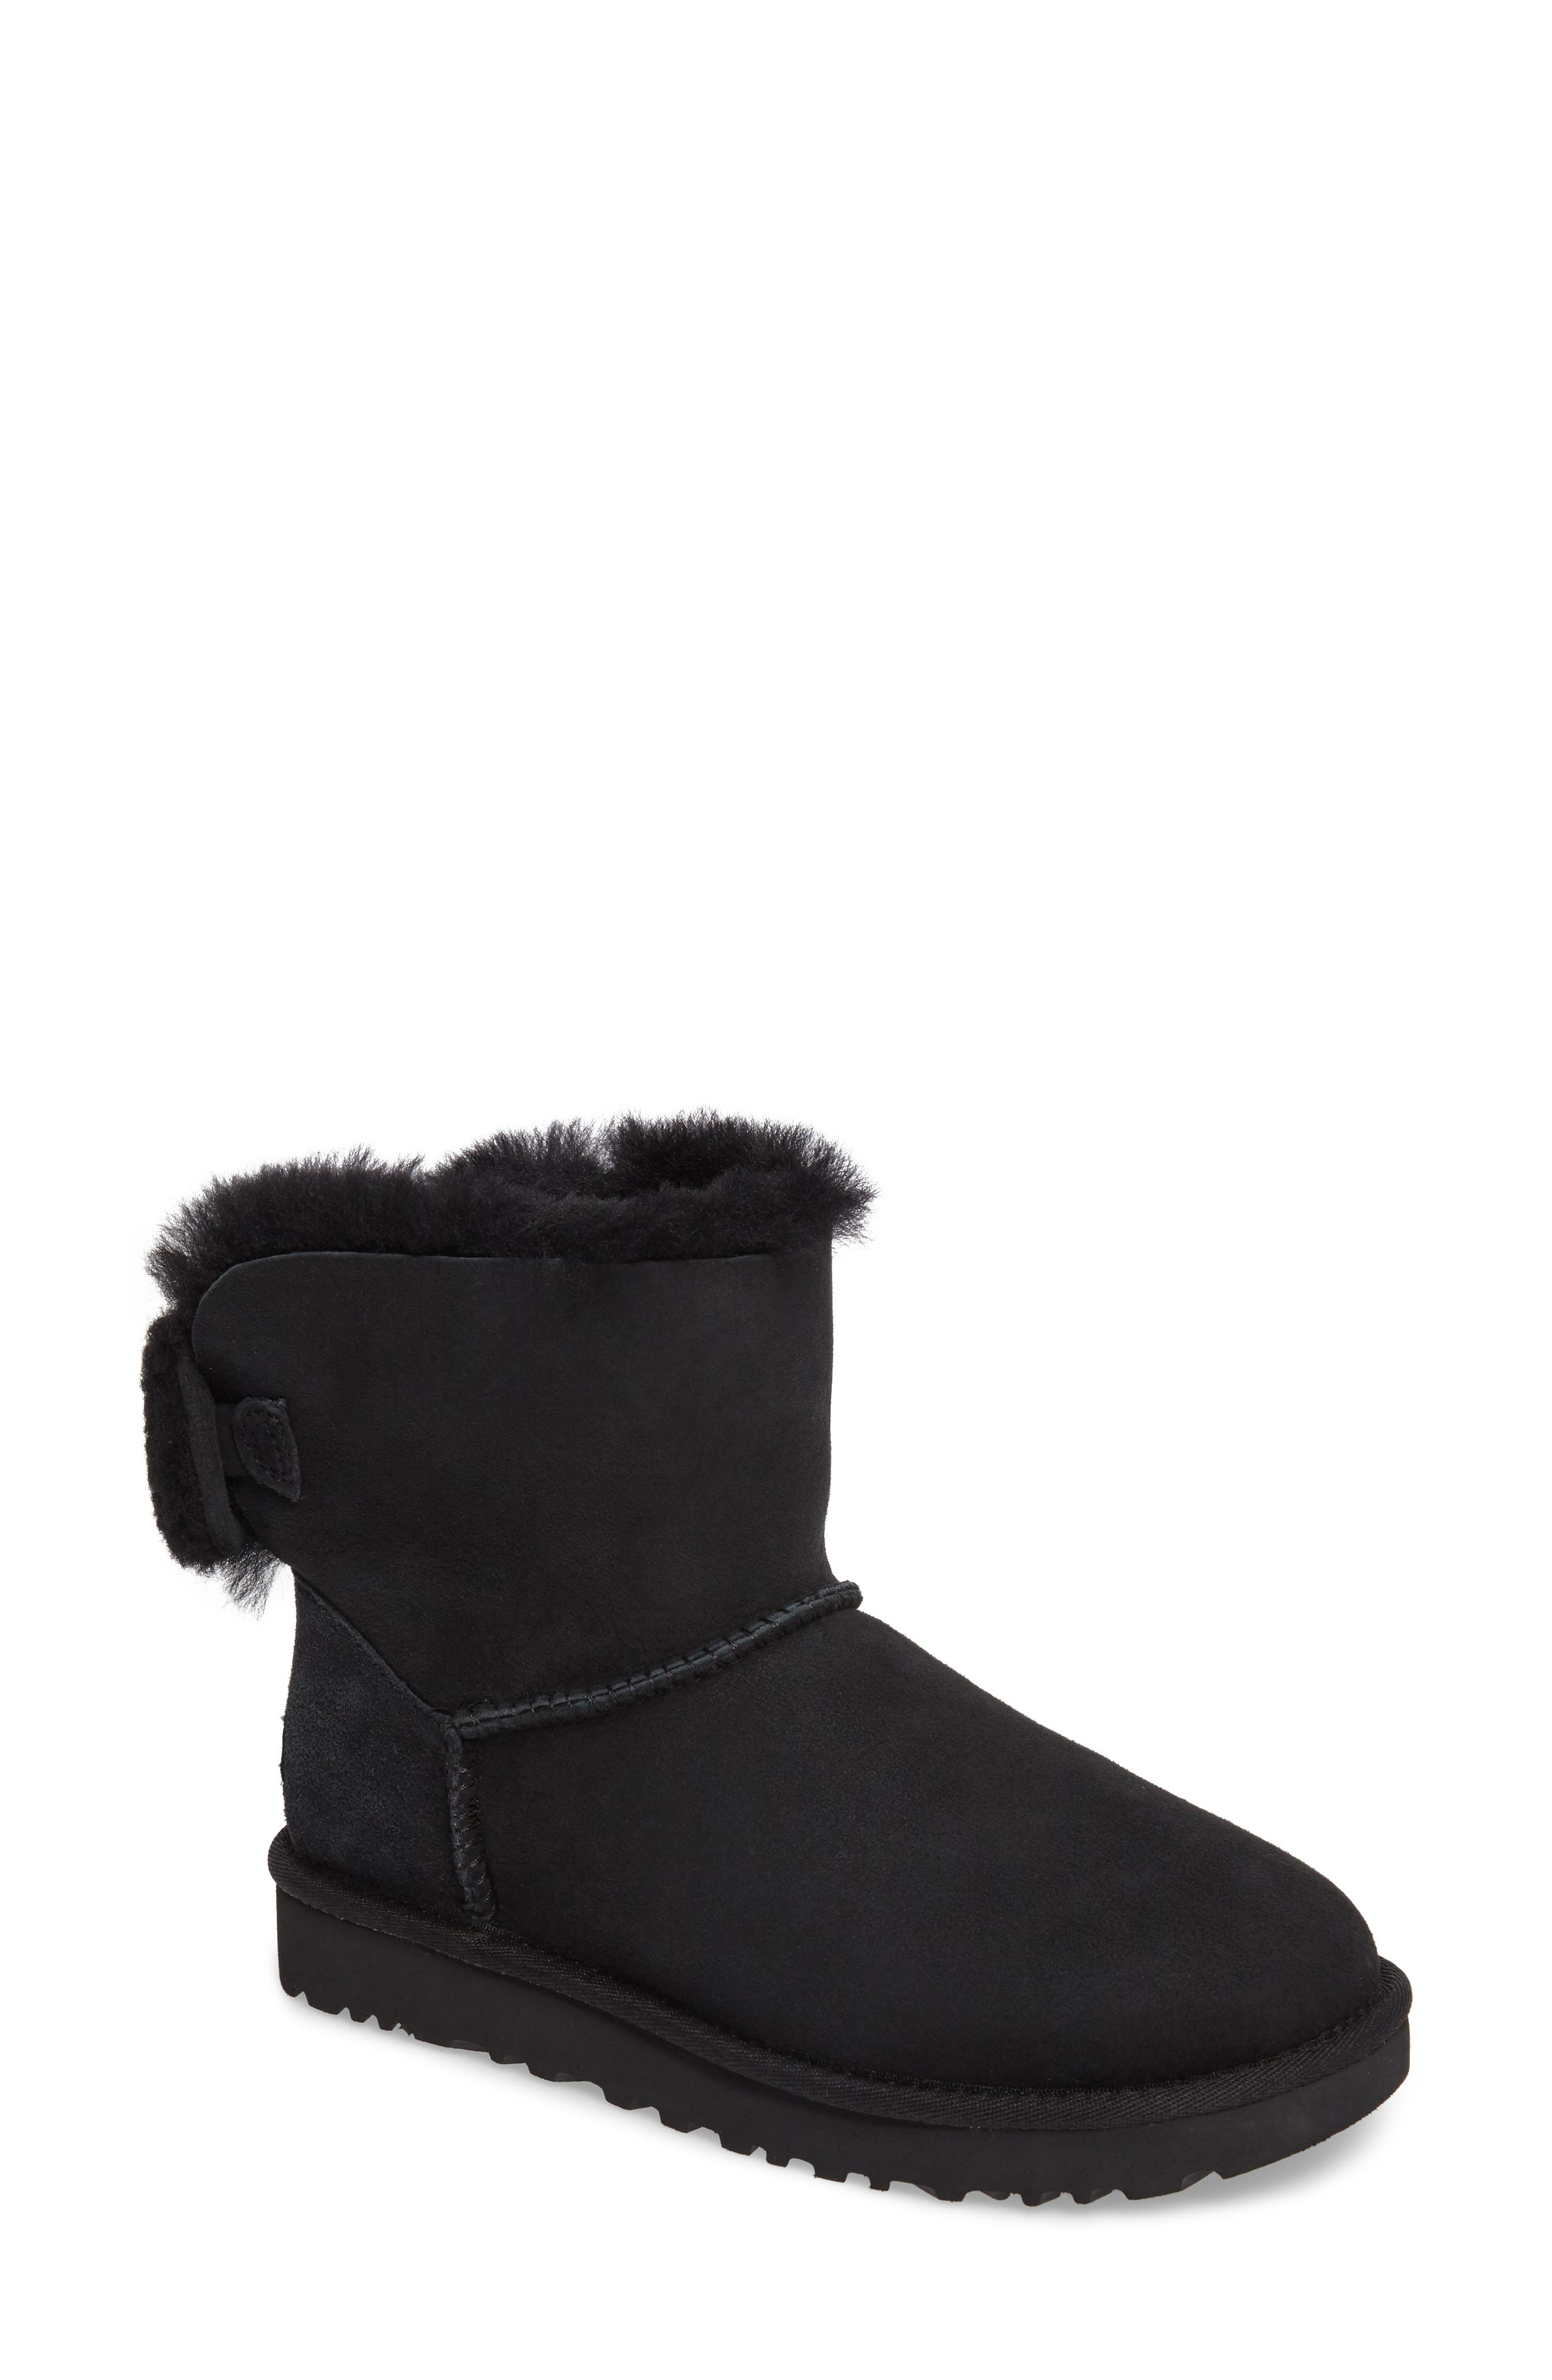 Arielle Genuine Shearling Bootie,                             Main thumbnail 1, color,                             Black Suede